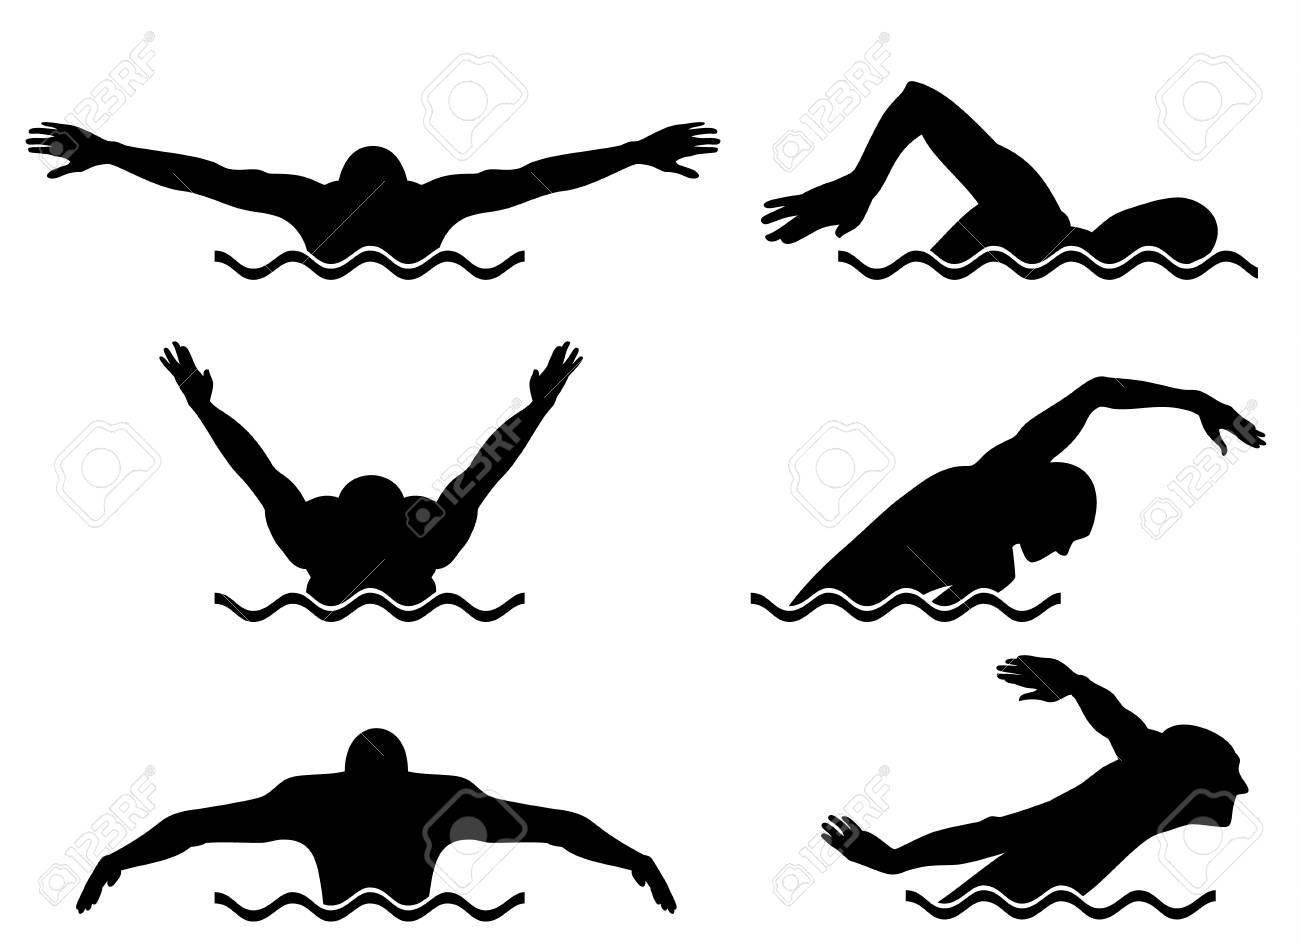 Vector illustration of a six swimmers set - 79131942